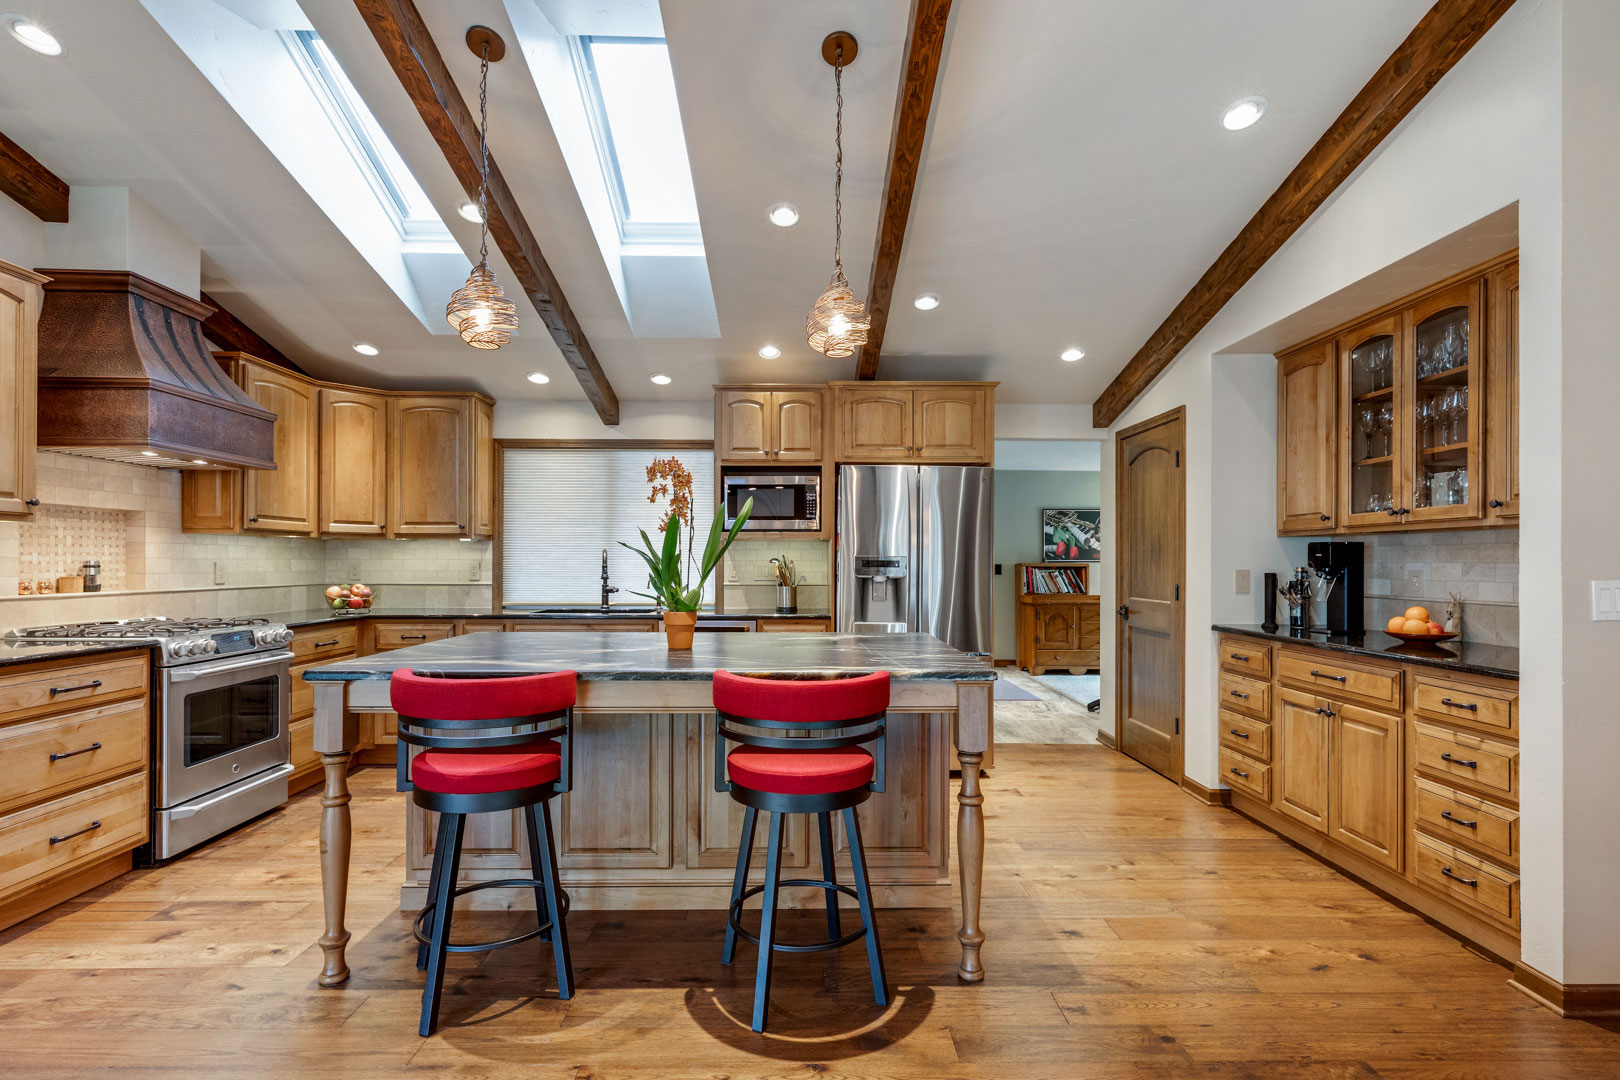 kitchen remodel, home remodeler - Henderer Design + Build, Corvallis OR